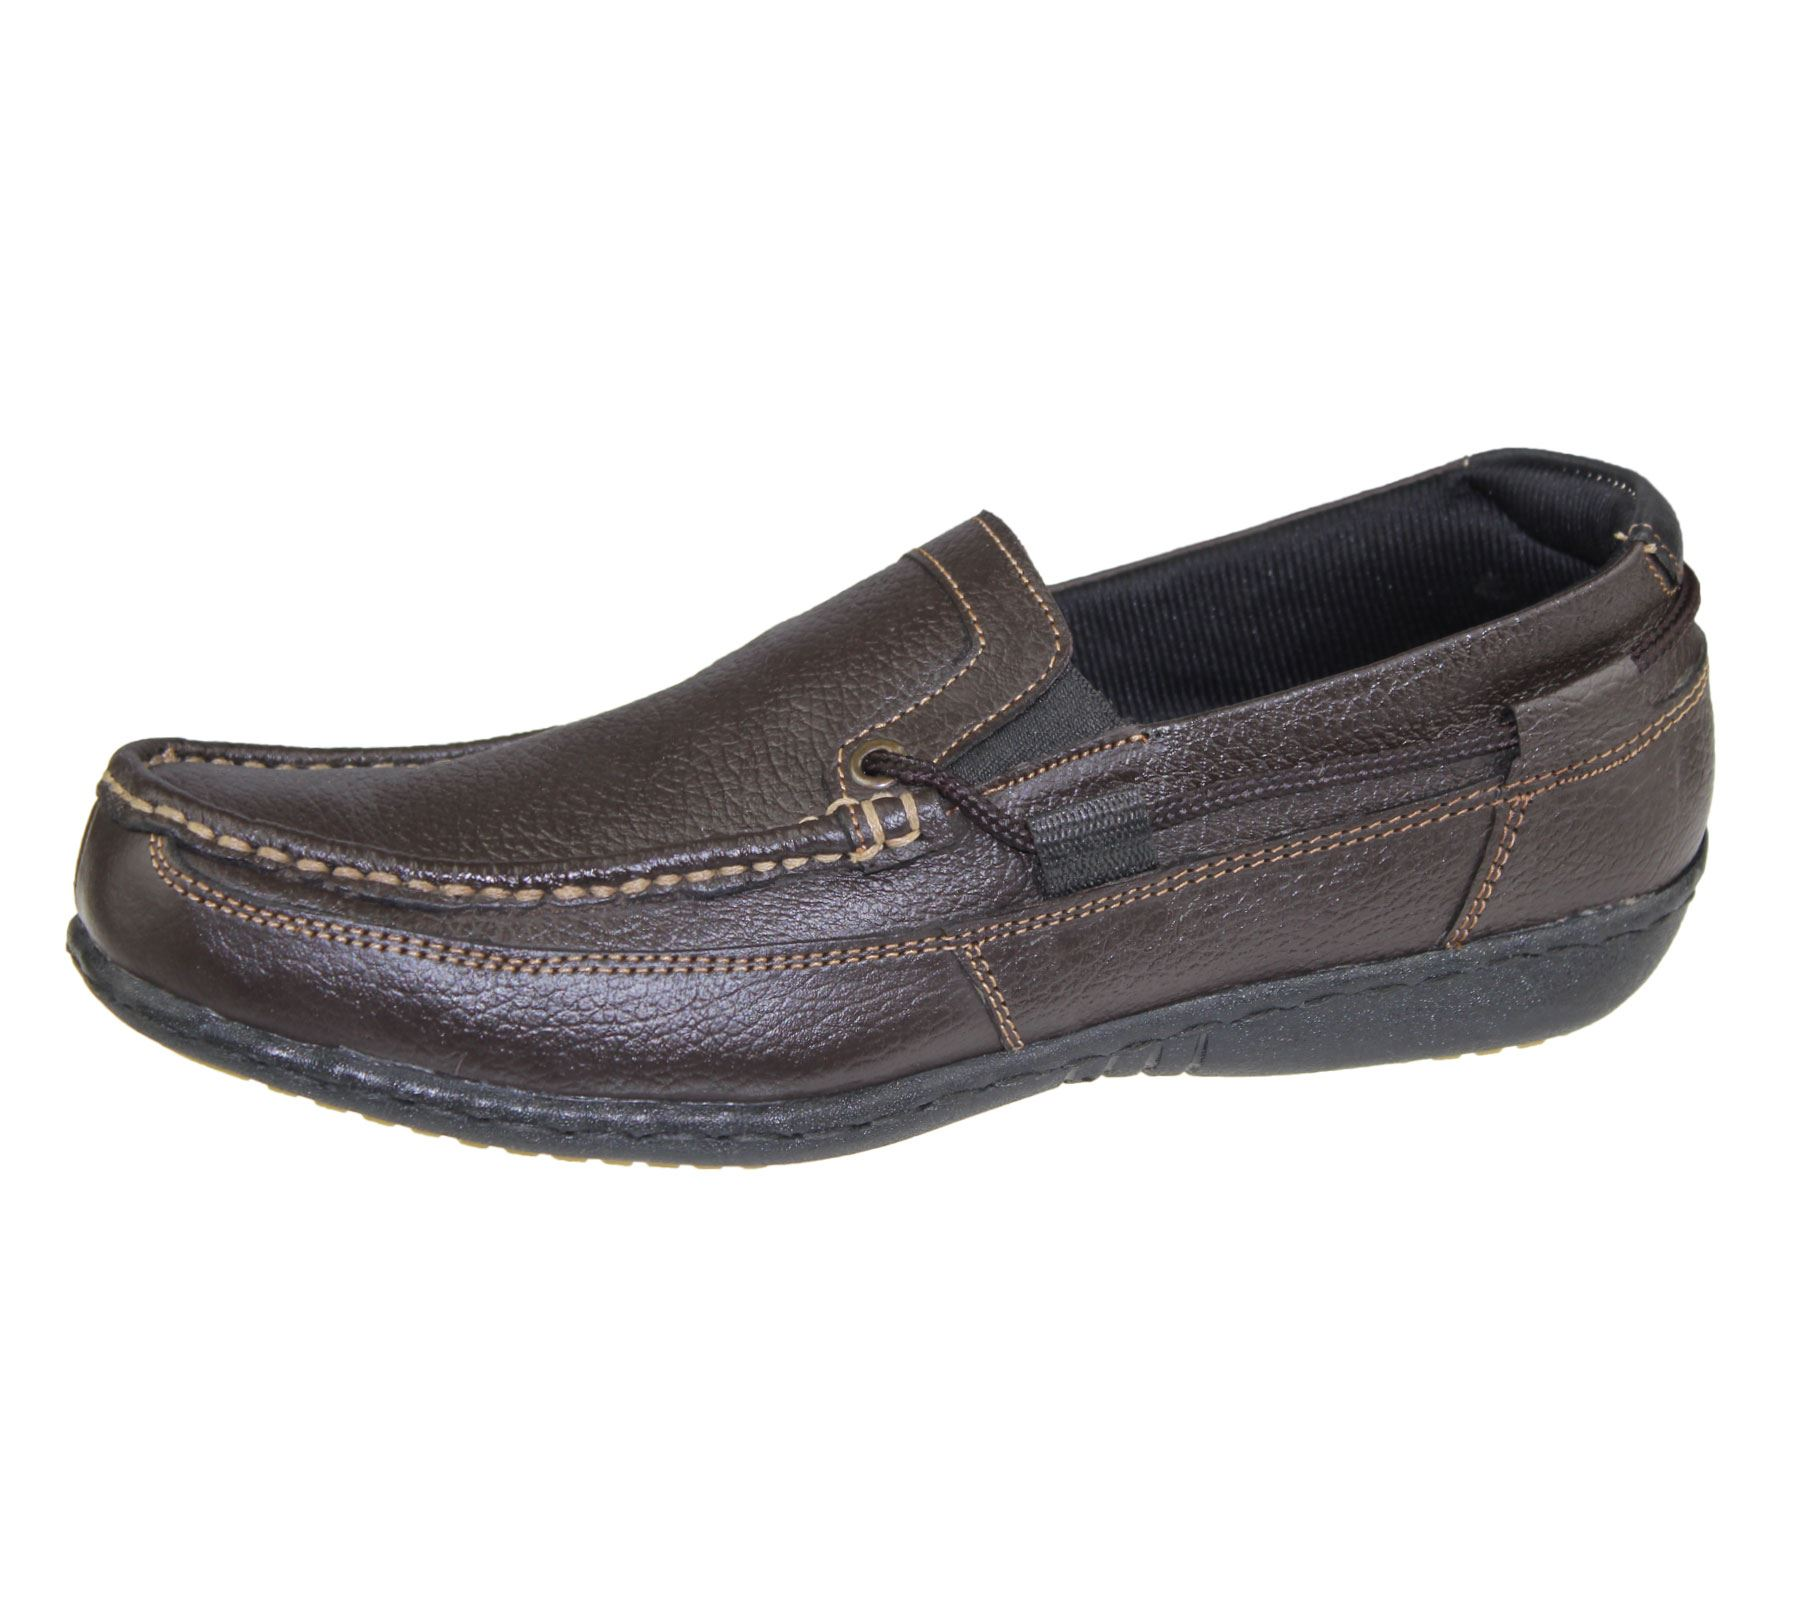 Mens Slip On Shoes Casual Moccasins Loafer Walking Comfort Wedding D Island England Suede Brown